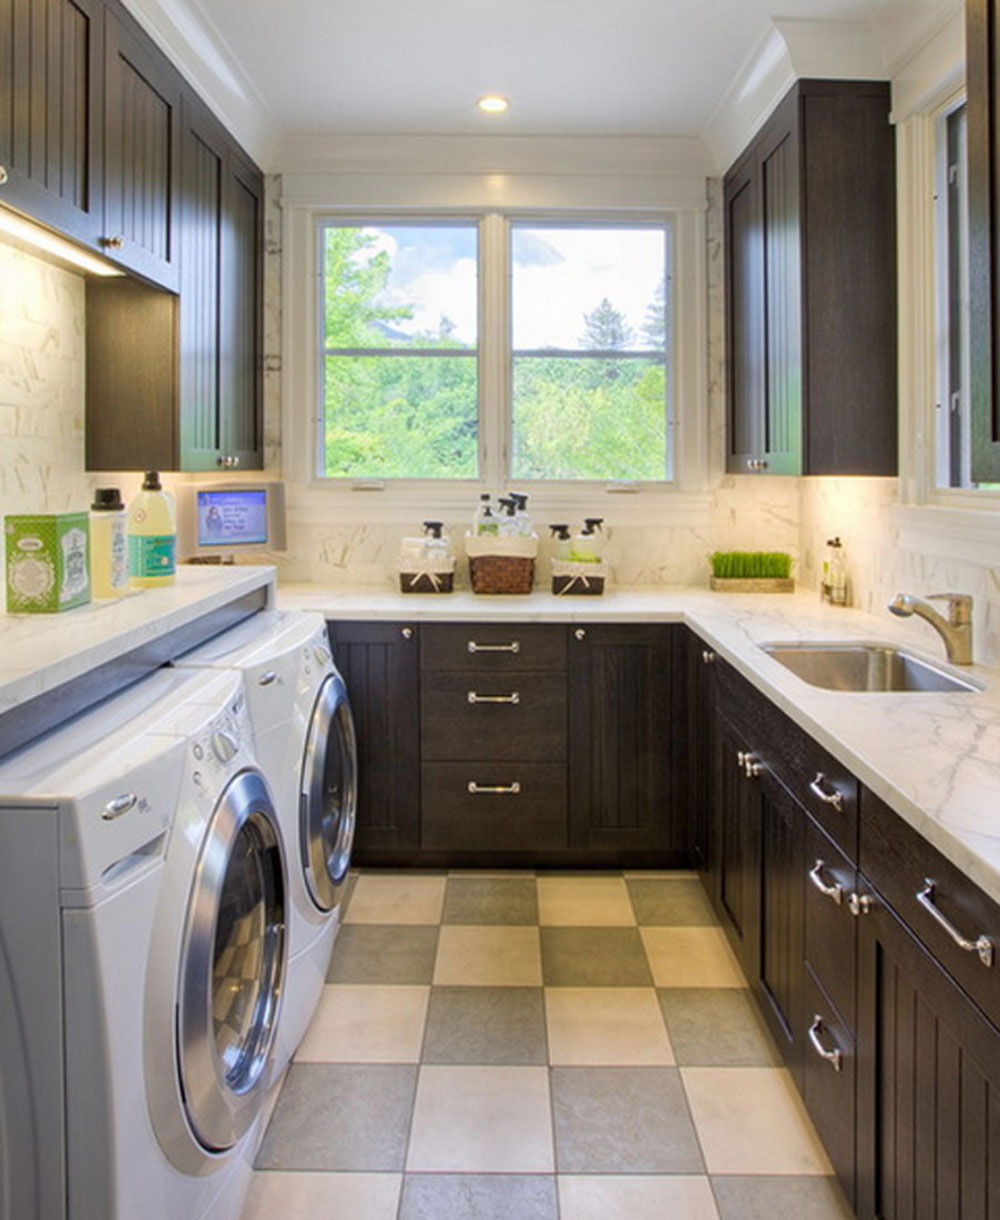 Design A Utility Room Kitchen Laundry Room Design Picture Gallery For Choosing The